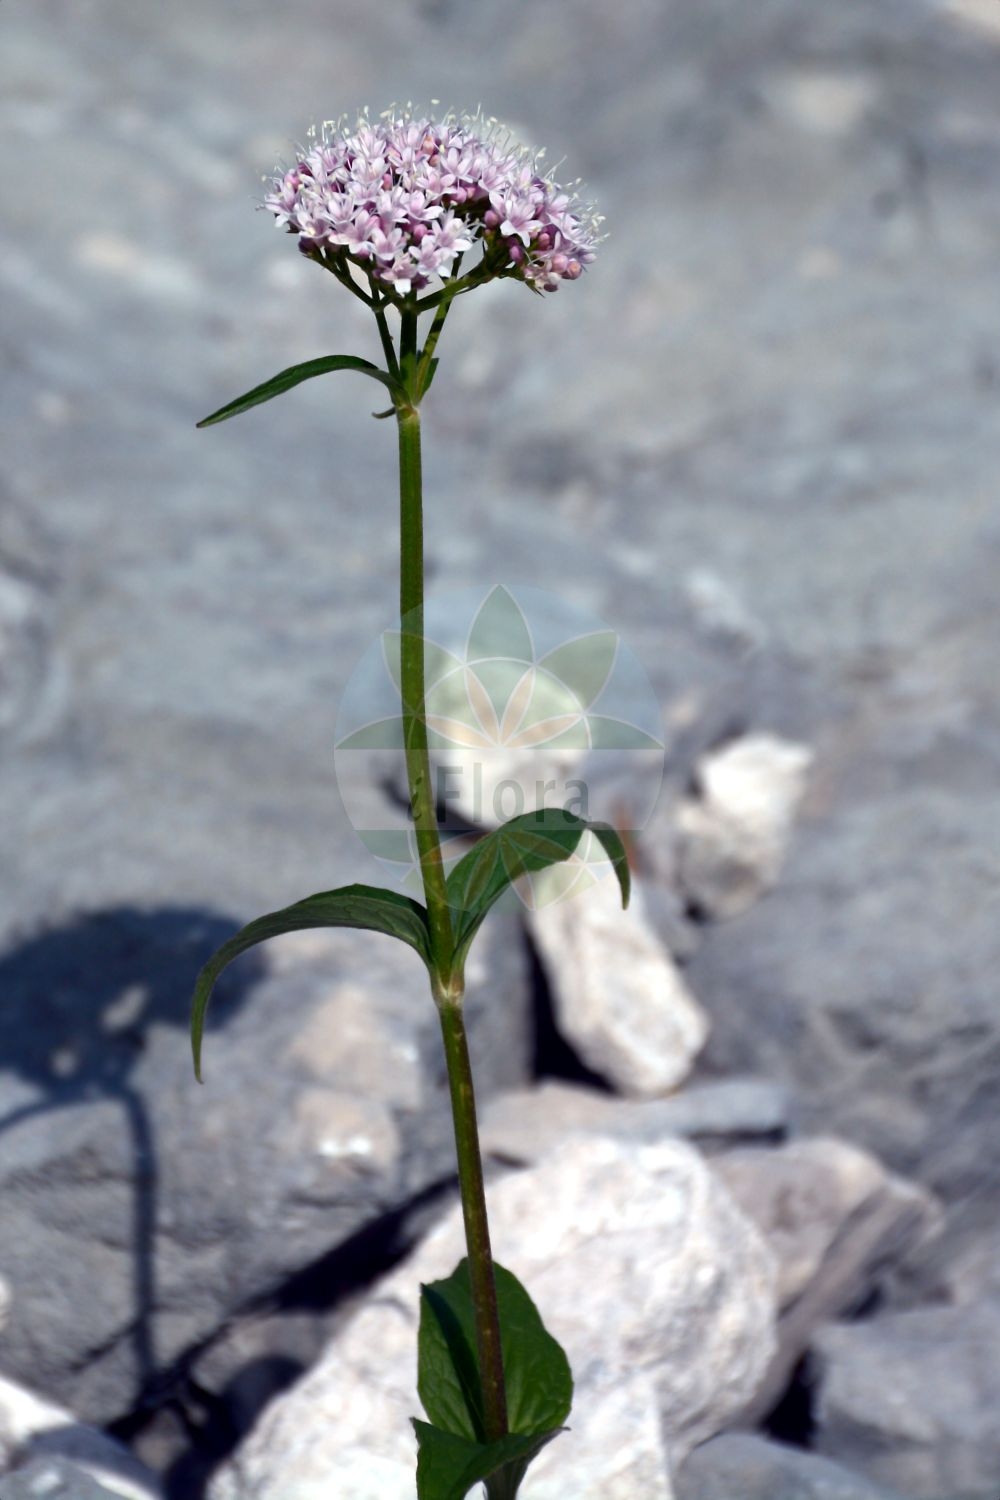 Foto von Valeriana montana (Berg-Baldrian - Mountain Valerian). Das Foto wurde in Schachen, Garmisch-Partenkirchen, Bayern, Deutschland, Alpen aufgenommen. ---- Photo of Valeriana montana (Berg-Baldrian - Mountain Valerian).The picture was taken in Schachen, Garmisch-Partenkirchen, Bavaria, Germany, Alps.(Valeriana montana,Berg-Baldrian,Mountain Valerian,Valeriana,Baldrian,Valerian,Caprifoliaceae,Geissblattgewaechse,Honeysuckle family)